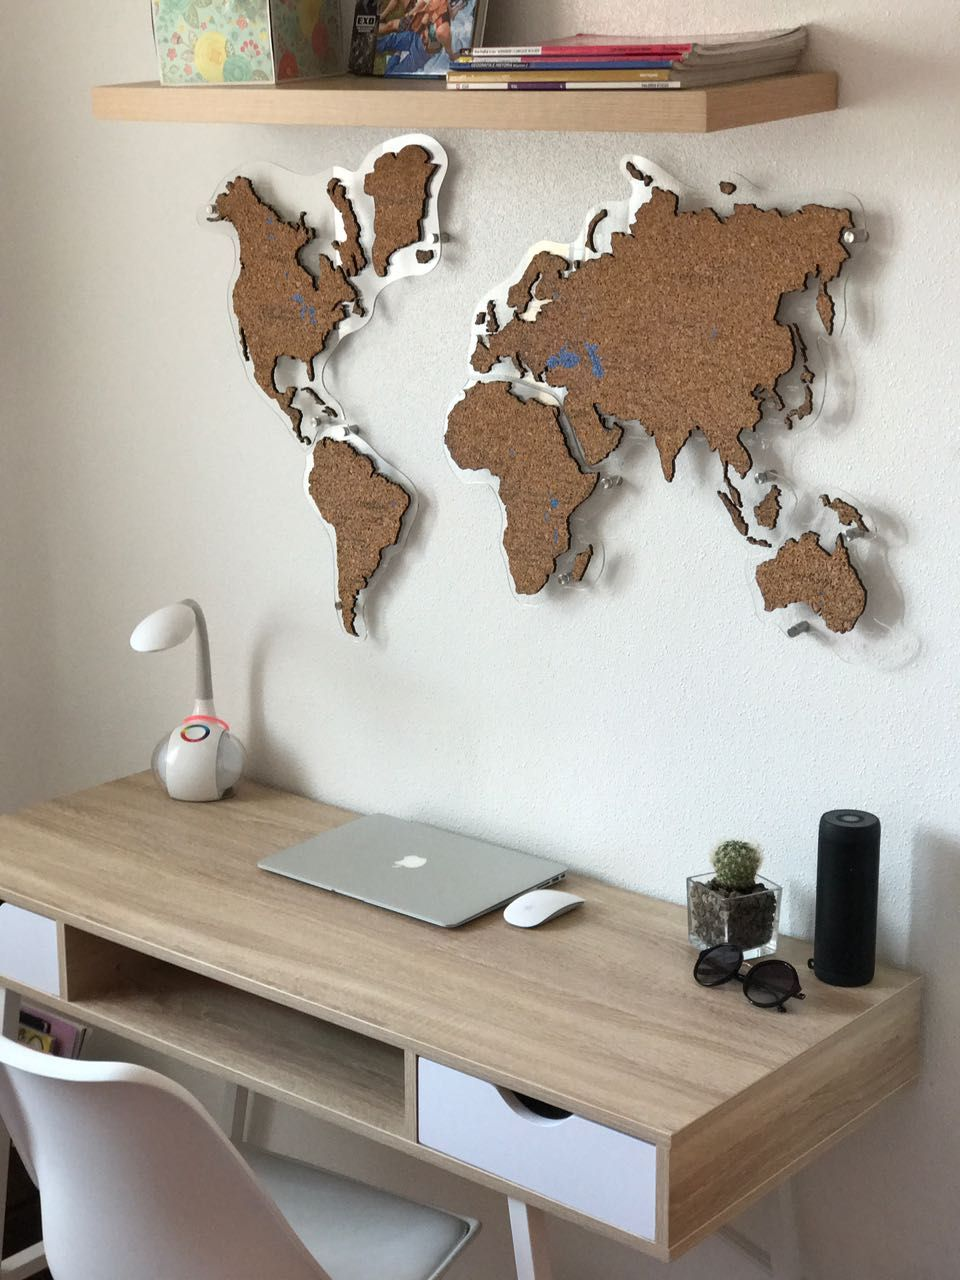 Cork World Map By Gadenmap Push Pin Travel Map For Wall Office Decor Bedroom Living Room Kid S Room Decorating Uniq Travel Room Decor Decor Map Wall Decor